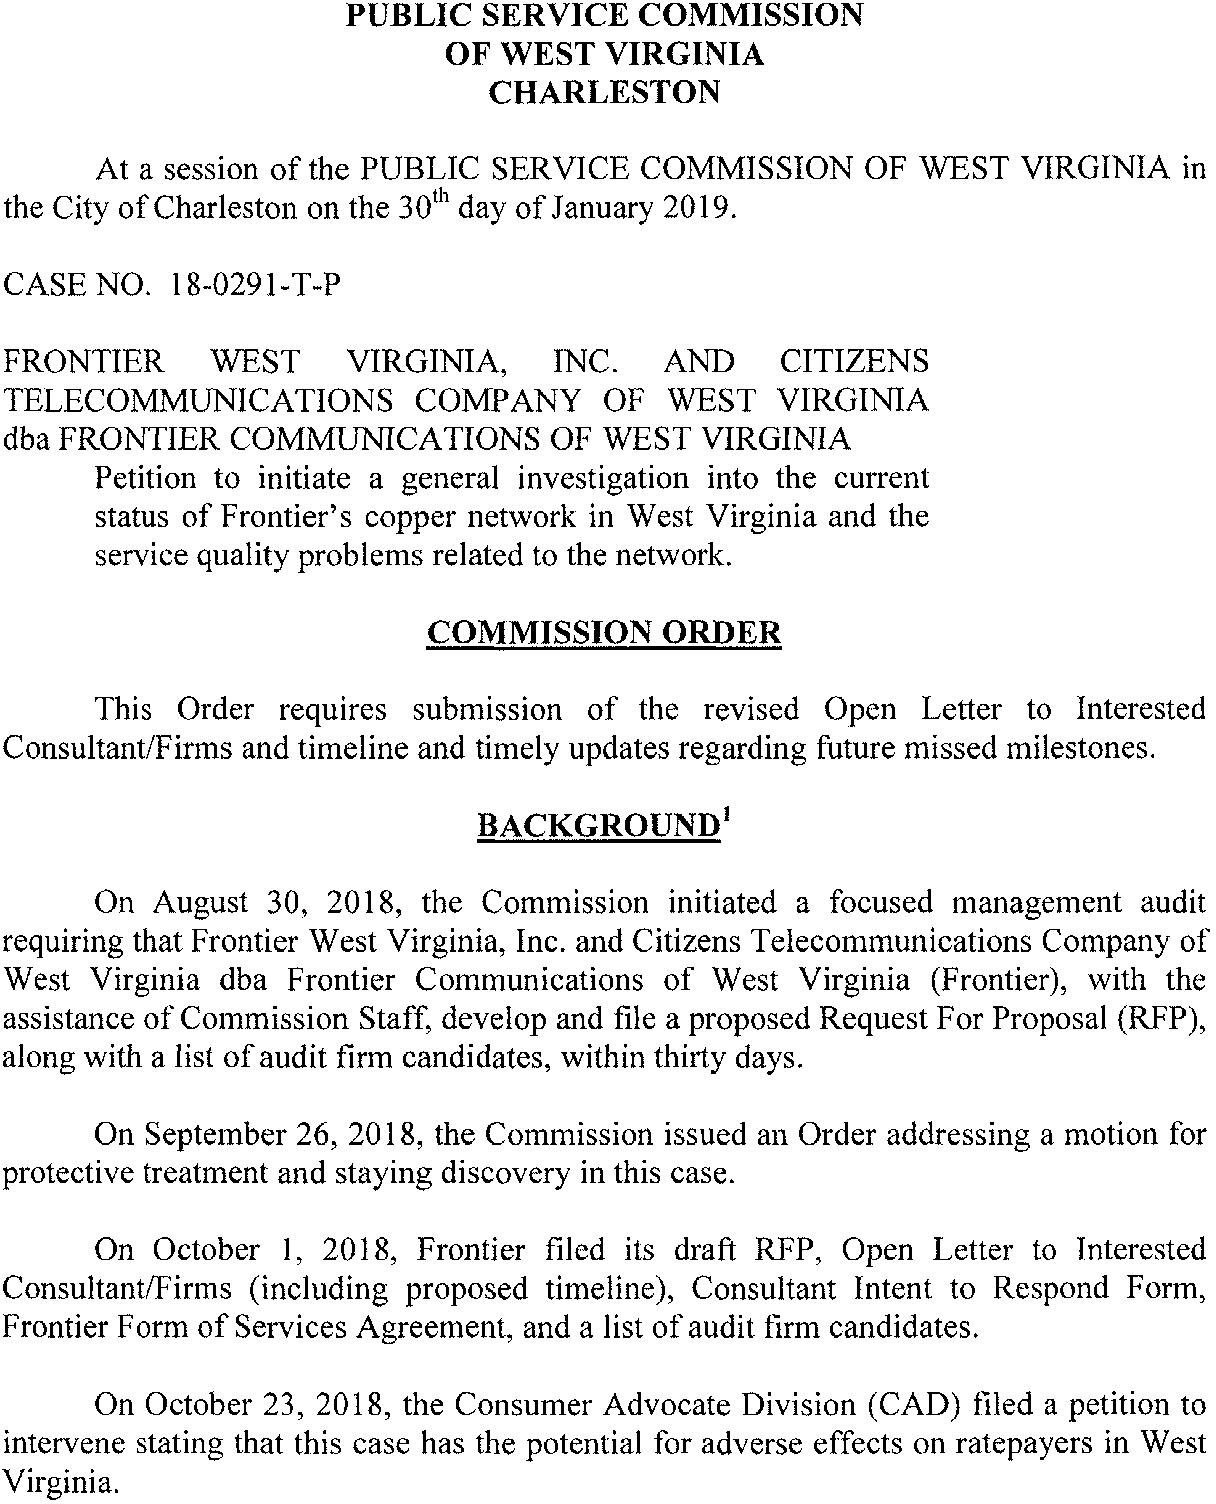 WV PSC: Frontier doesn't seem to take audit seriously